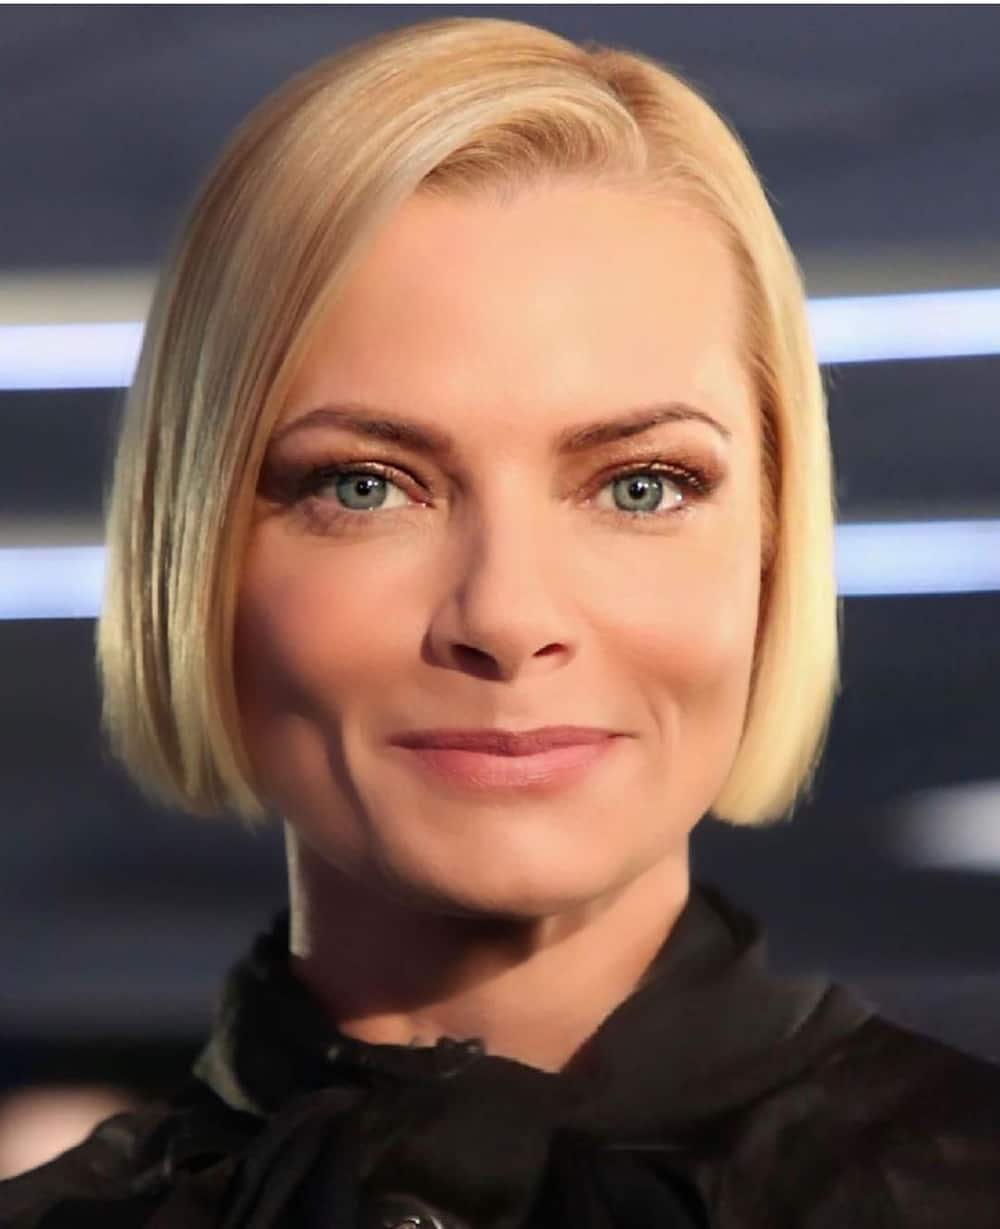 Jaime Pressly movies and TV shows